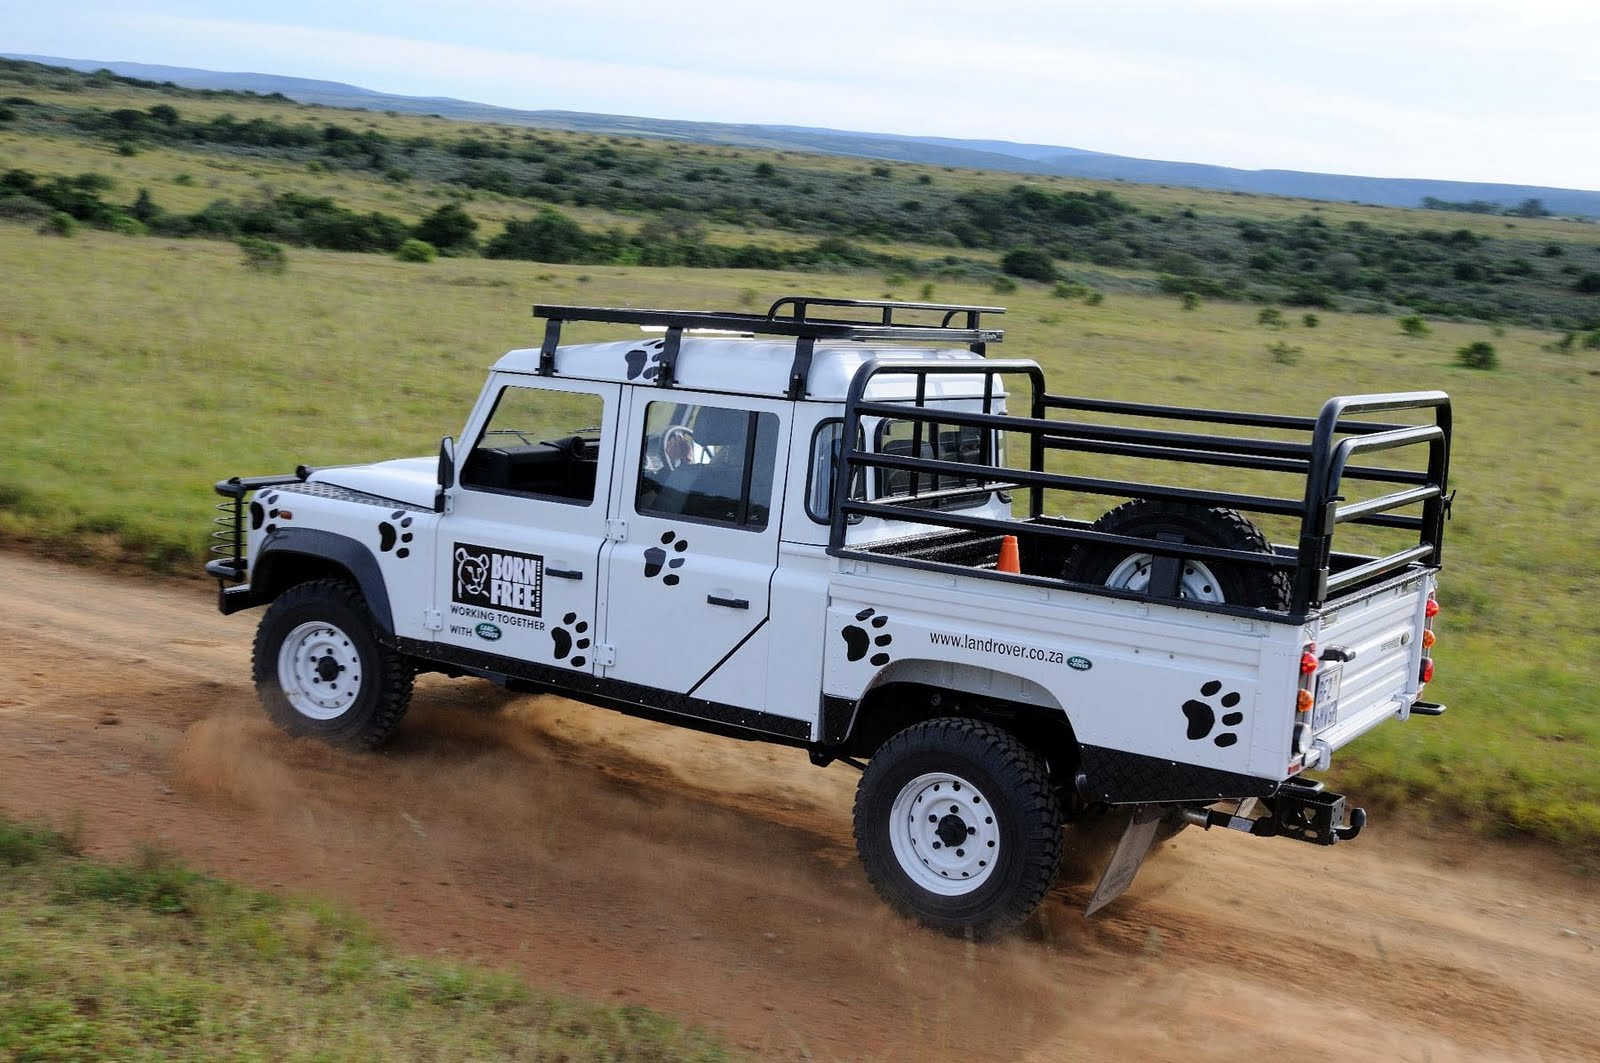 Top 24 Land Rover Defender 130 Crew Cab For Sale